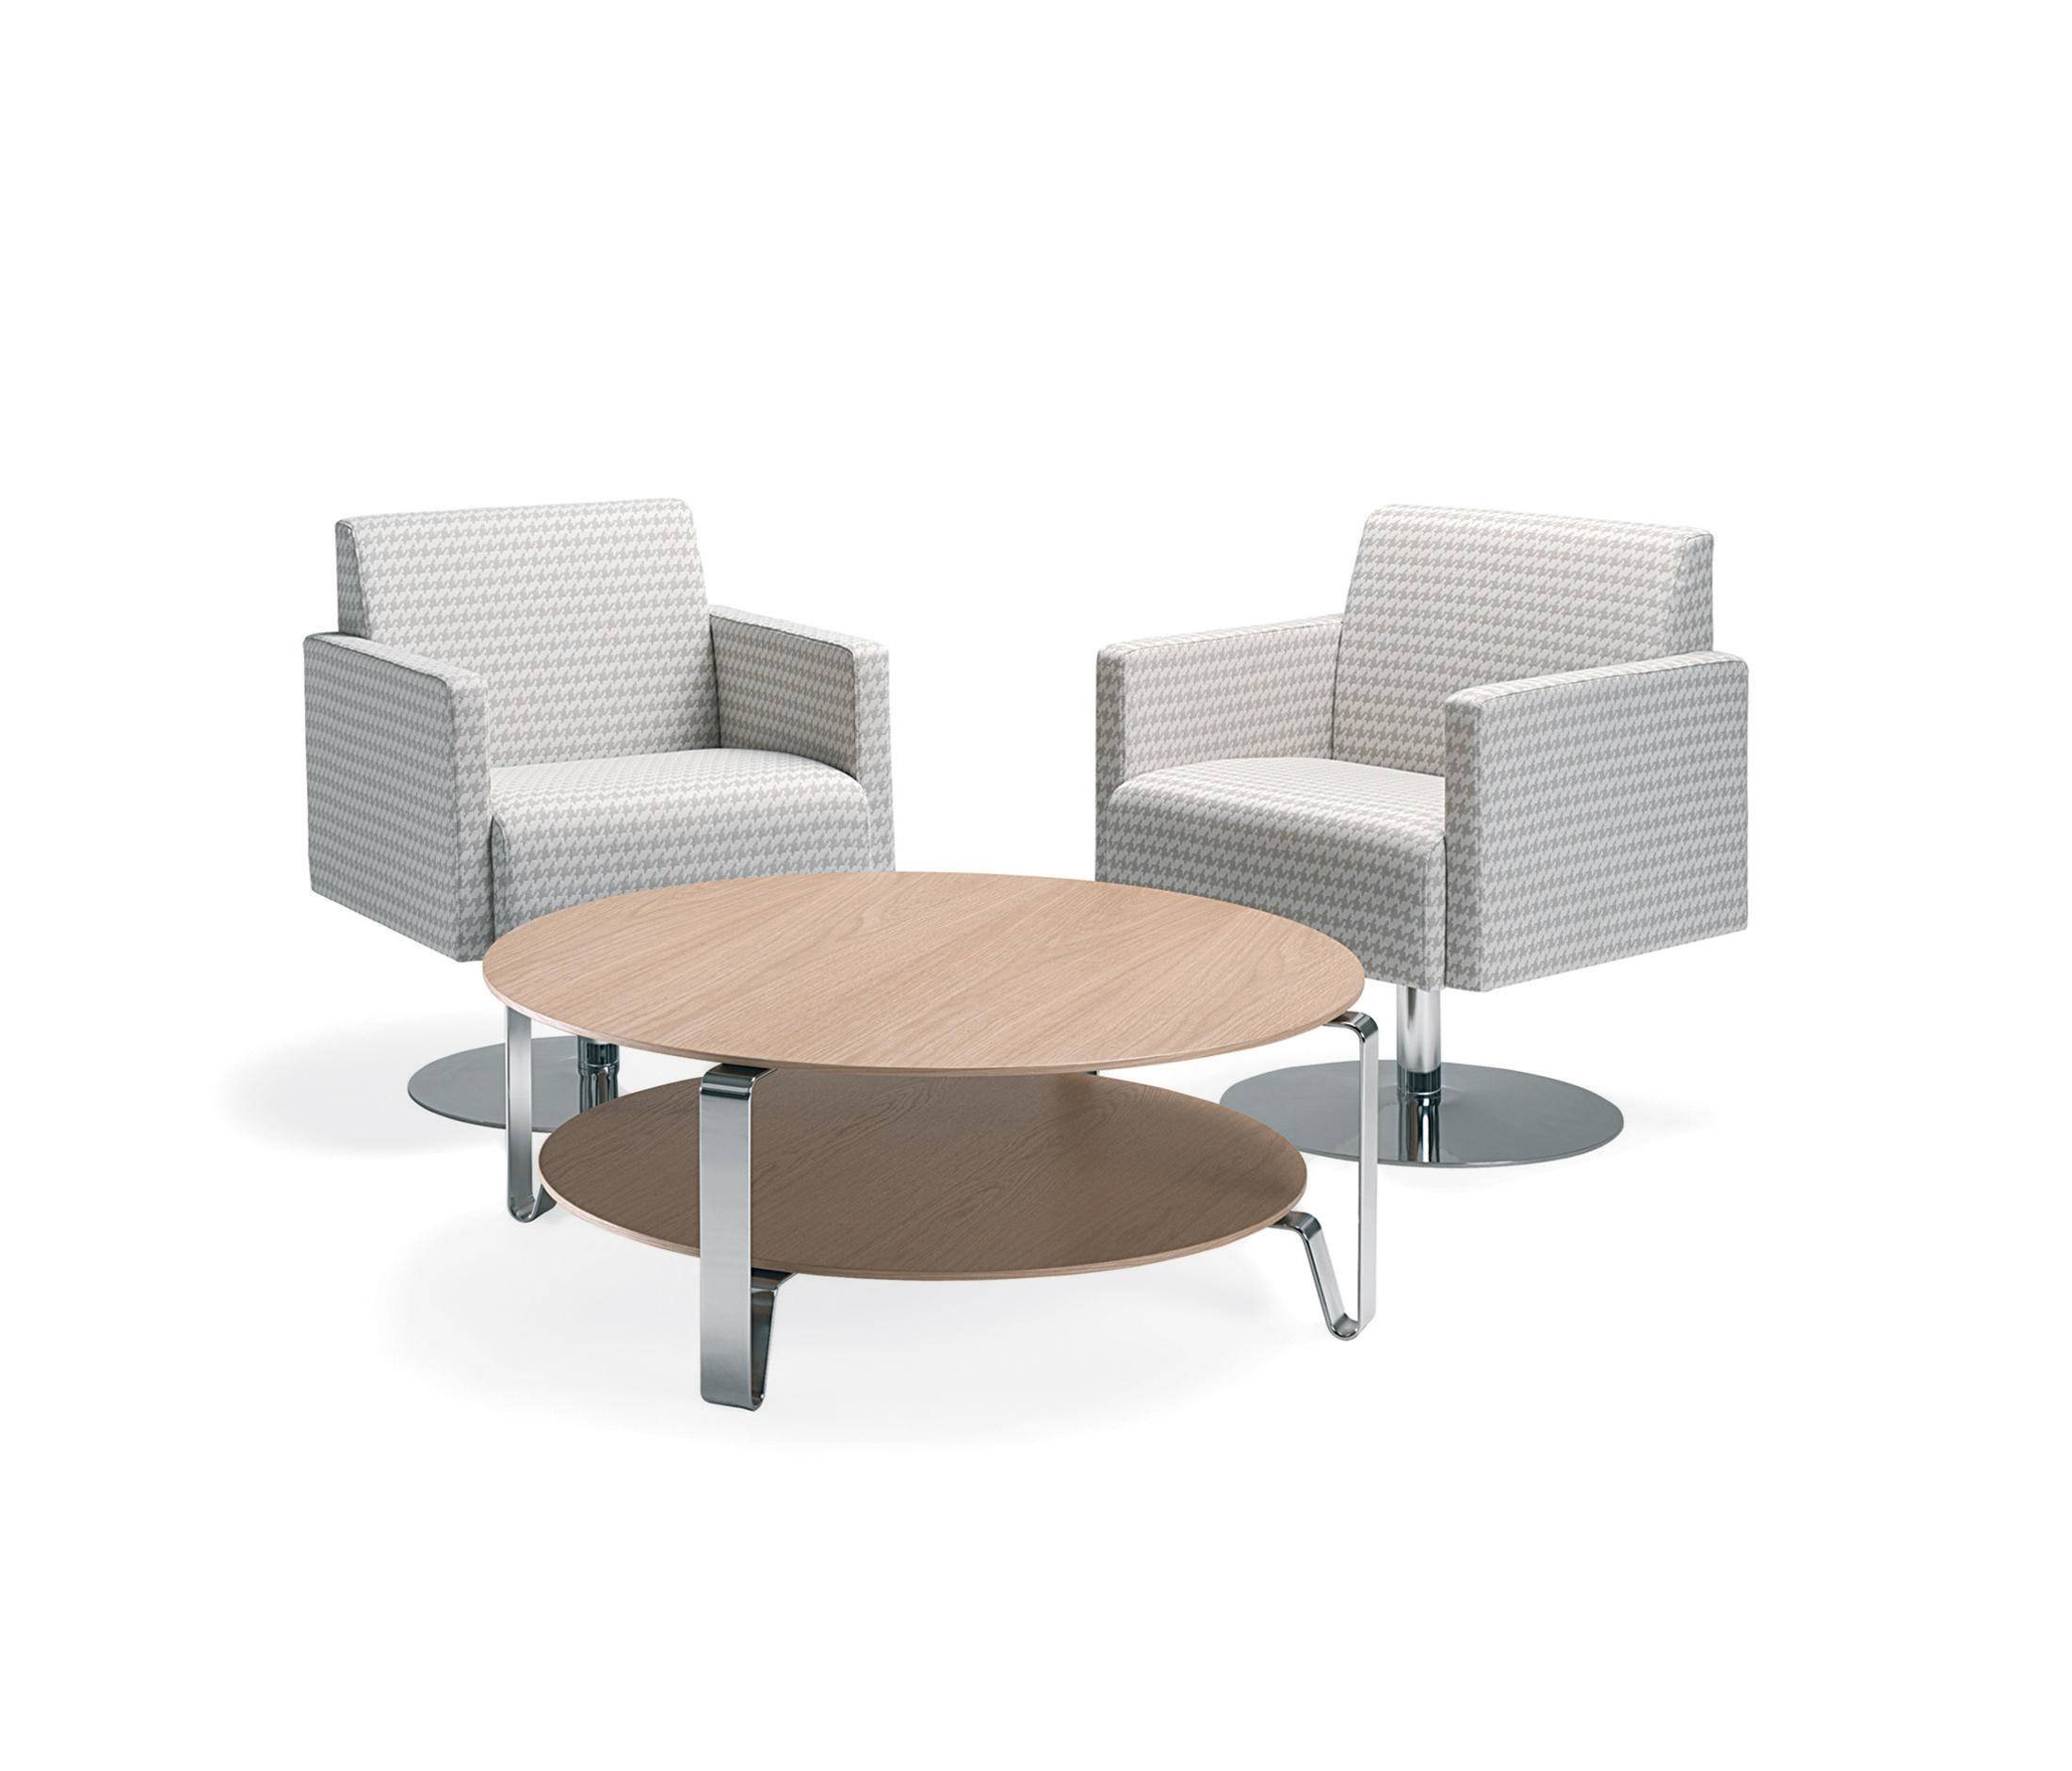 Cosmo Coffee Table - Lounge Tables From Materia | Architonic with Cosmo Coffee Tables (Image 6 of 30)